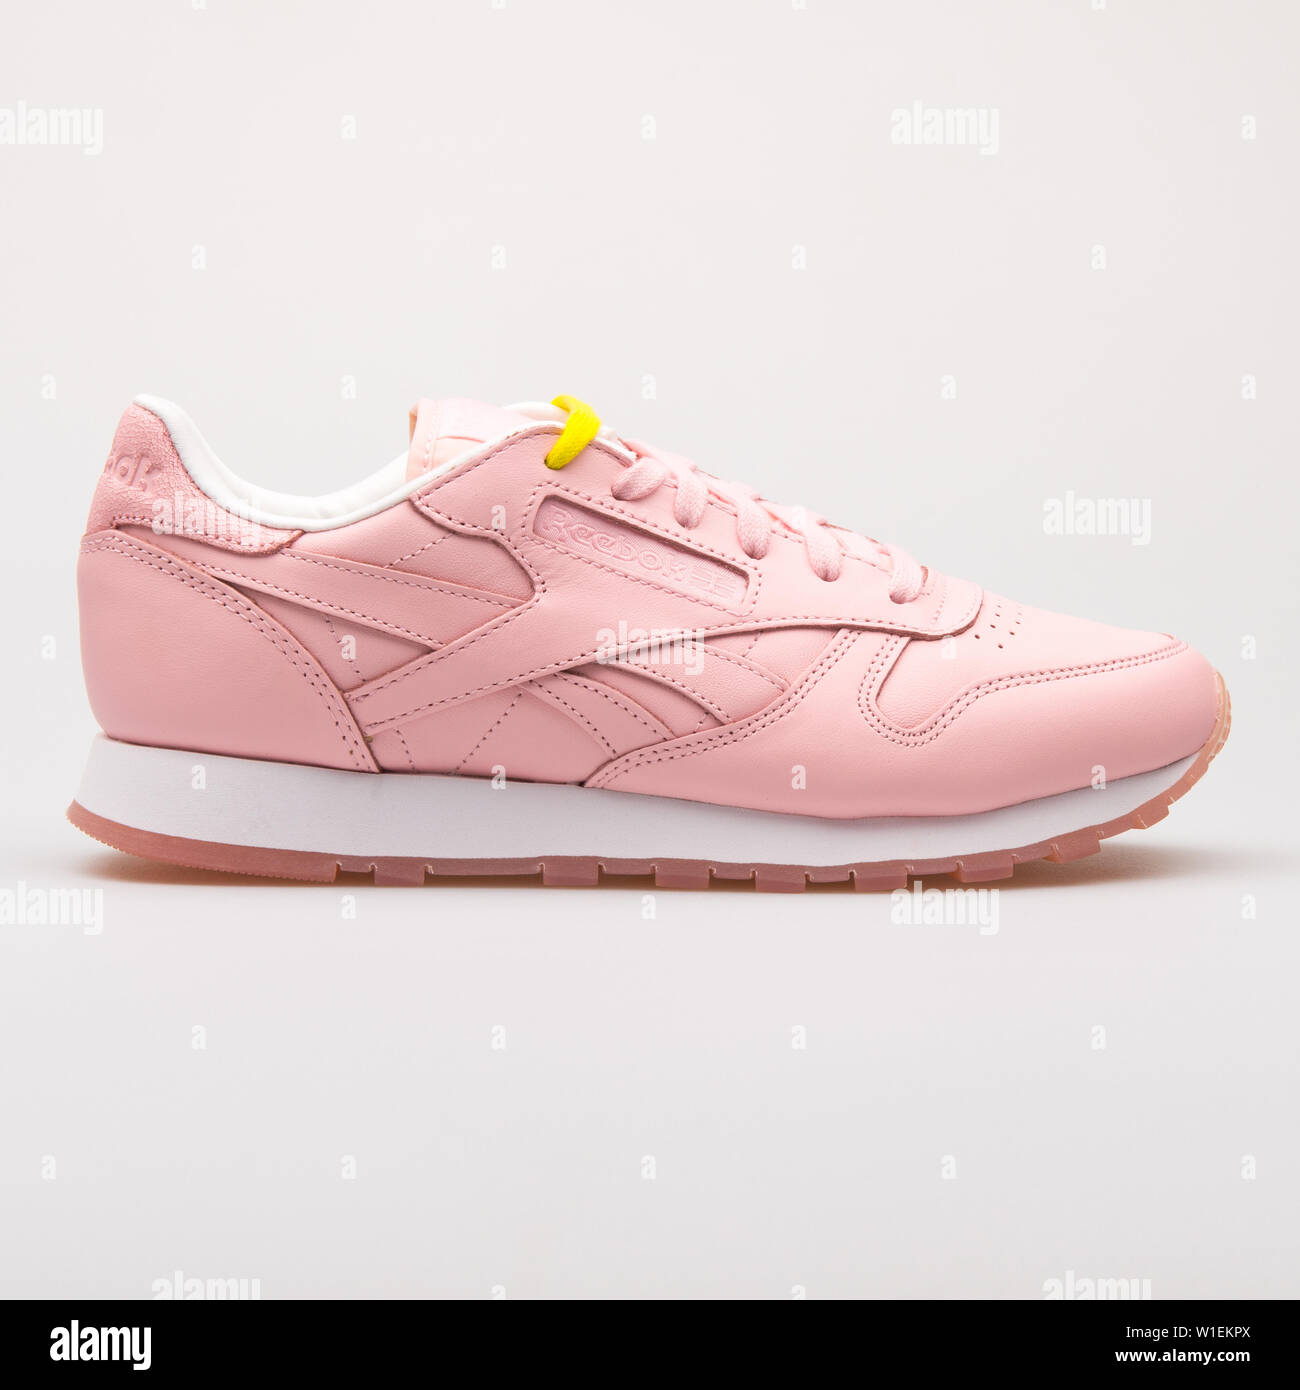 3bc98c17 VIENNA, AUSTRIA - AUGUST 28, 2017: Reebok Classic Leather Face pink sneaker  on